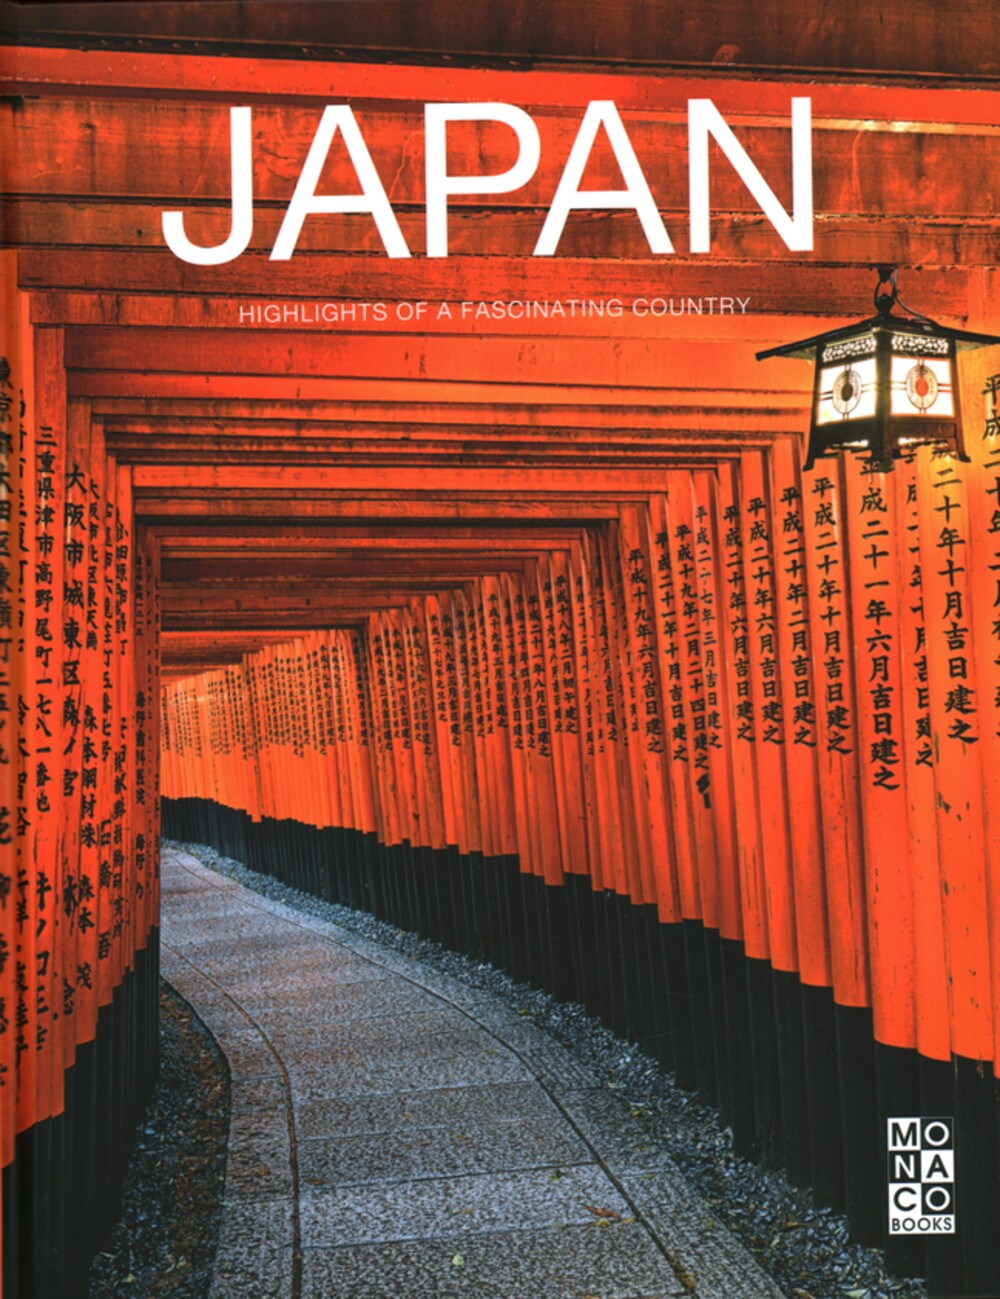 Japan Highlights of a Fascinating Country cover image